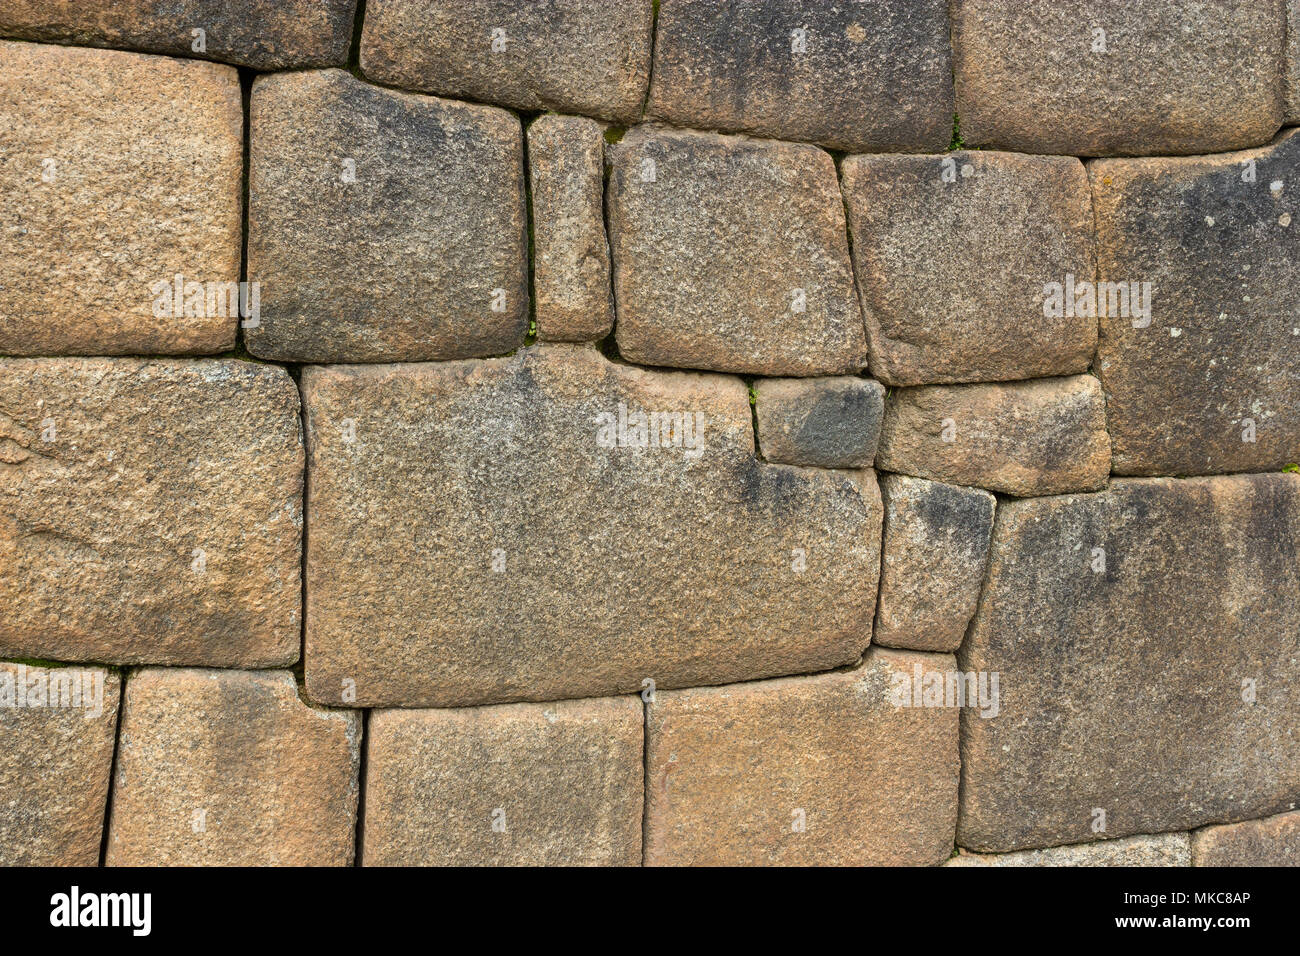 Close-up Detail of Inca Ashlar Wall Precise Stone Block Jointing, Machu Picchu, Peru - Stock Image